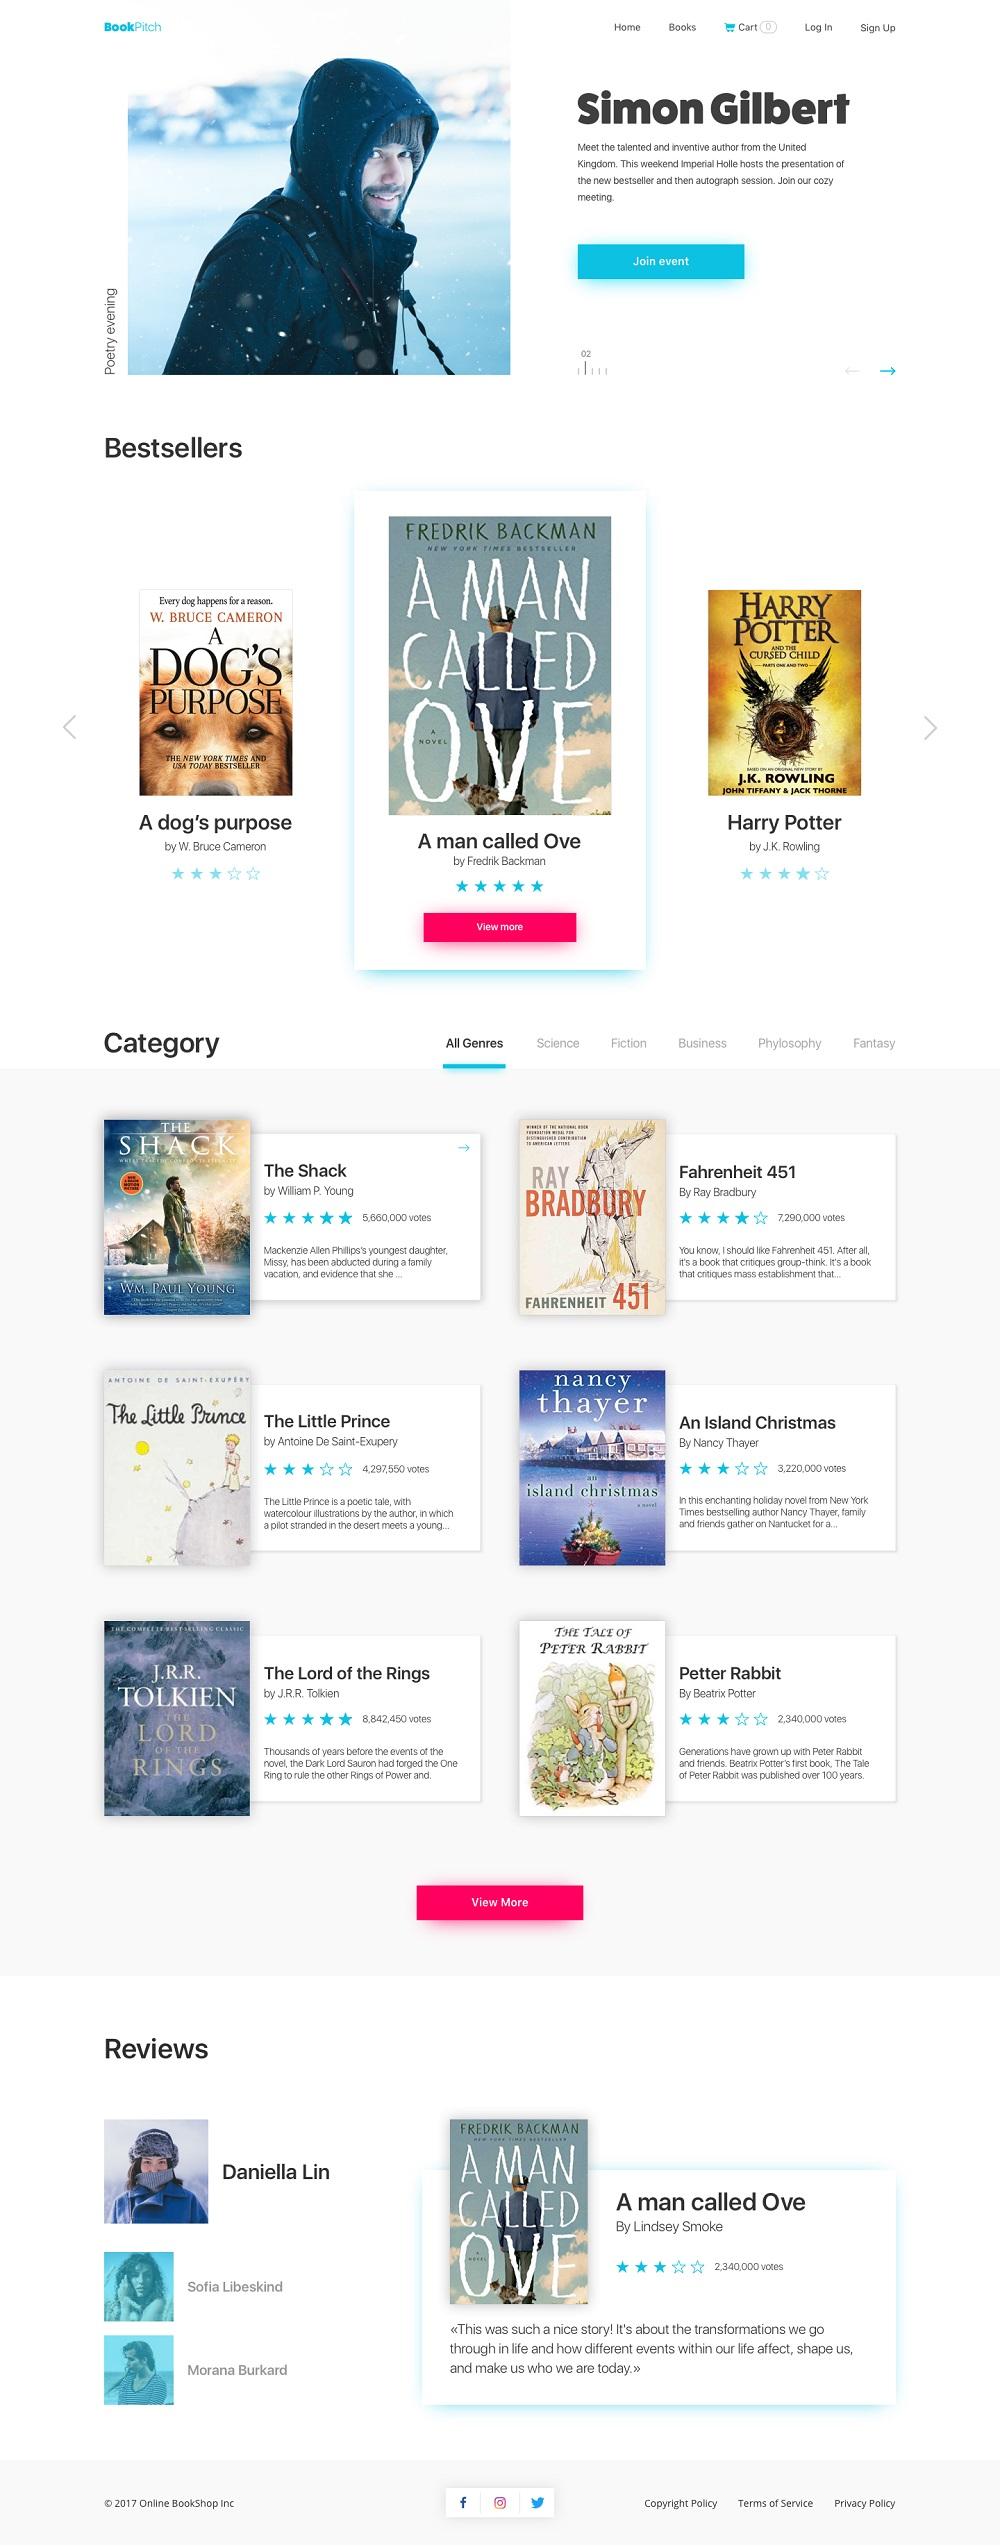 online_bookshop_website_design_tubik